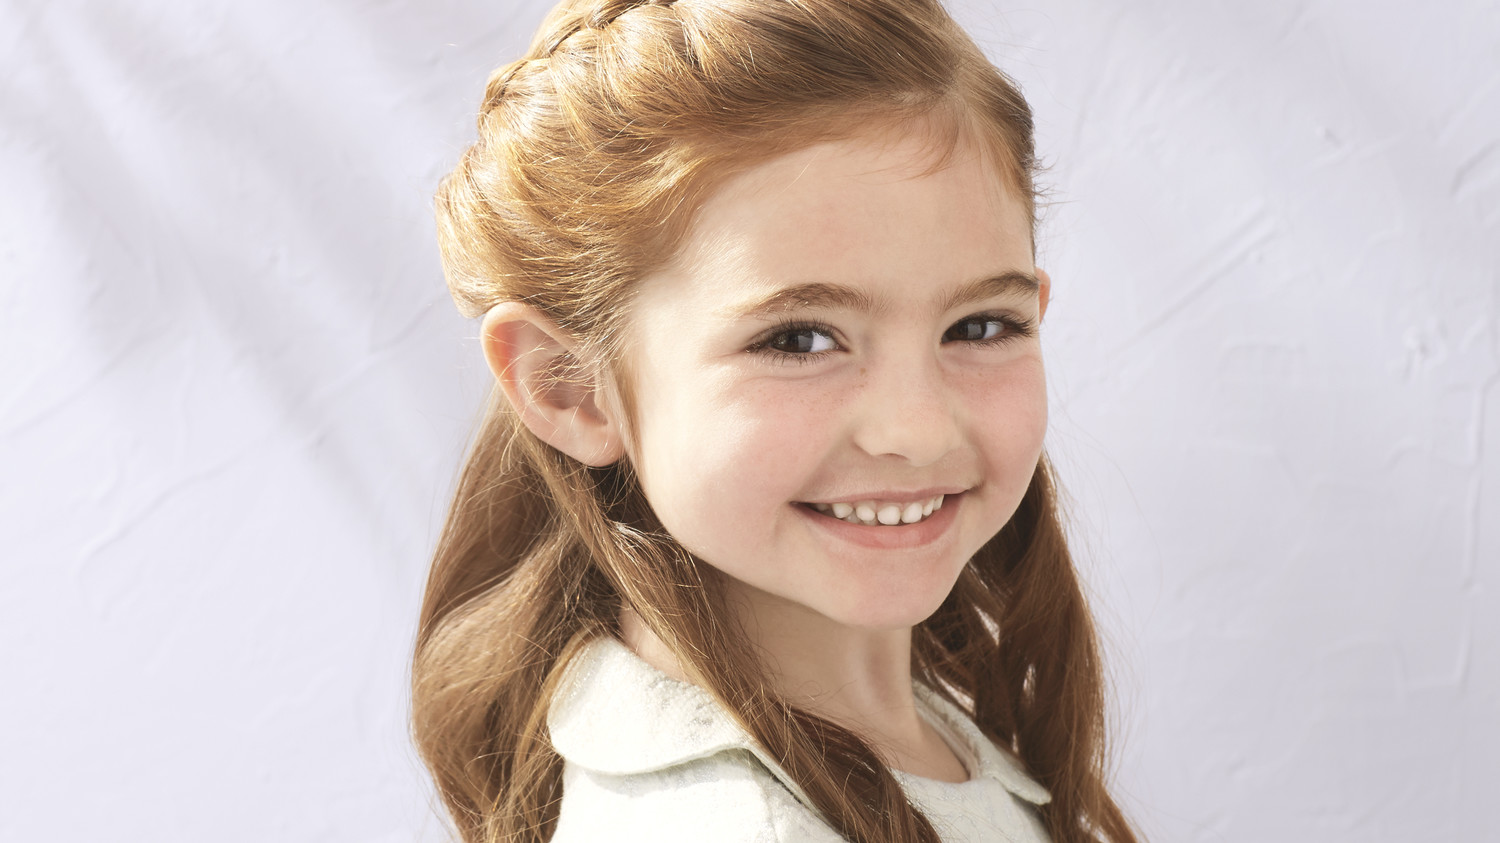 Flower Girl Hairstyles For Wedding: Flower Girl's Braided Half-Up-Half-Down Hairstyle